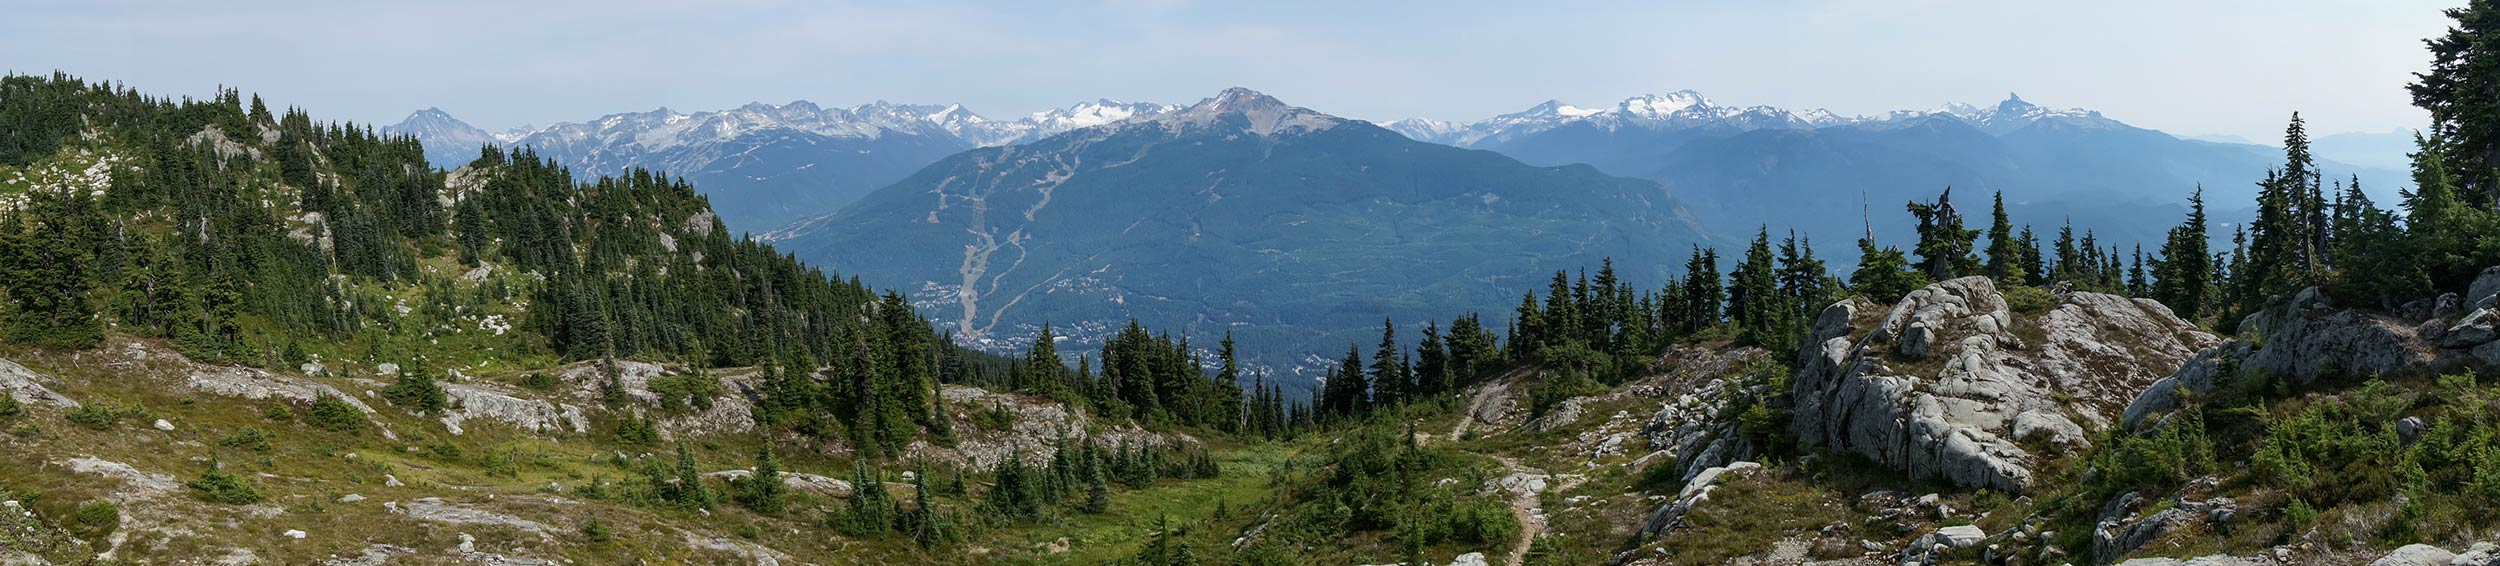 sproatt_alpine_trail1_pano.jpg